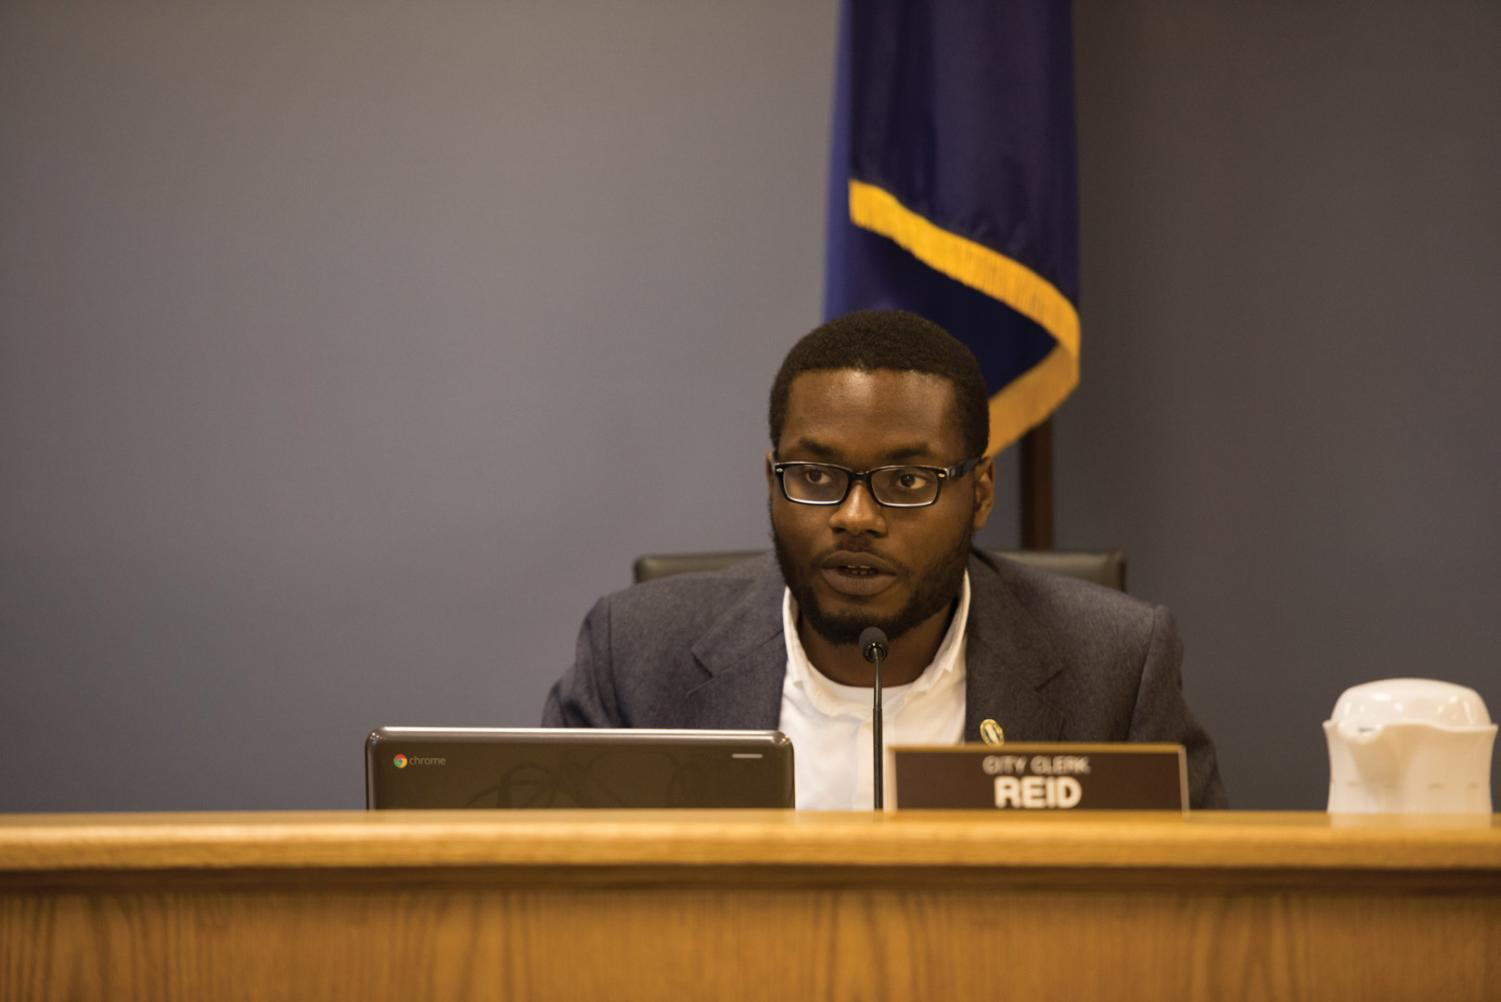 City clerk Devon Reid at a City Council meeting. Reid was arrested Tuesday for violating traffic laws and driving with a suspended license.